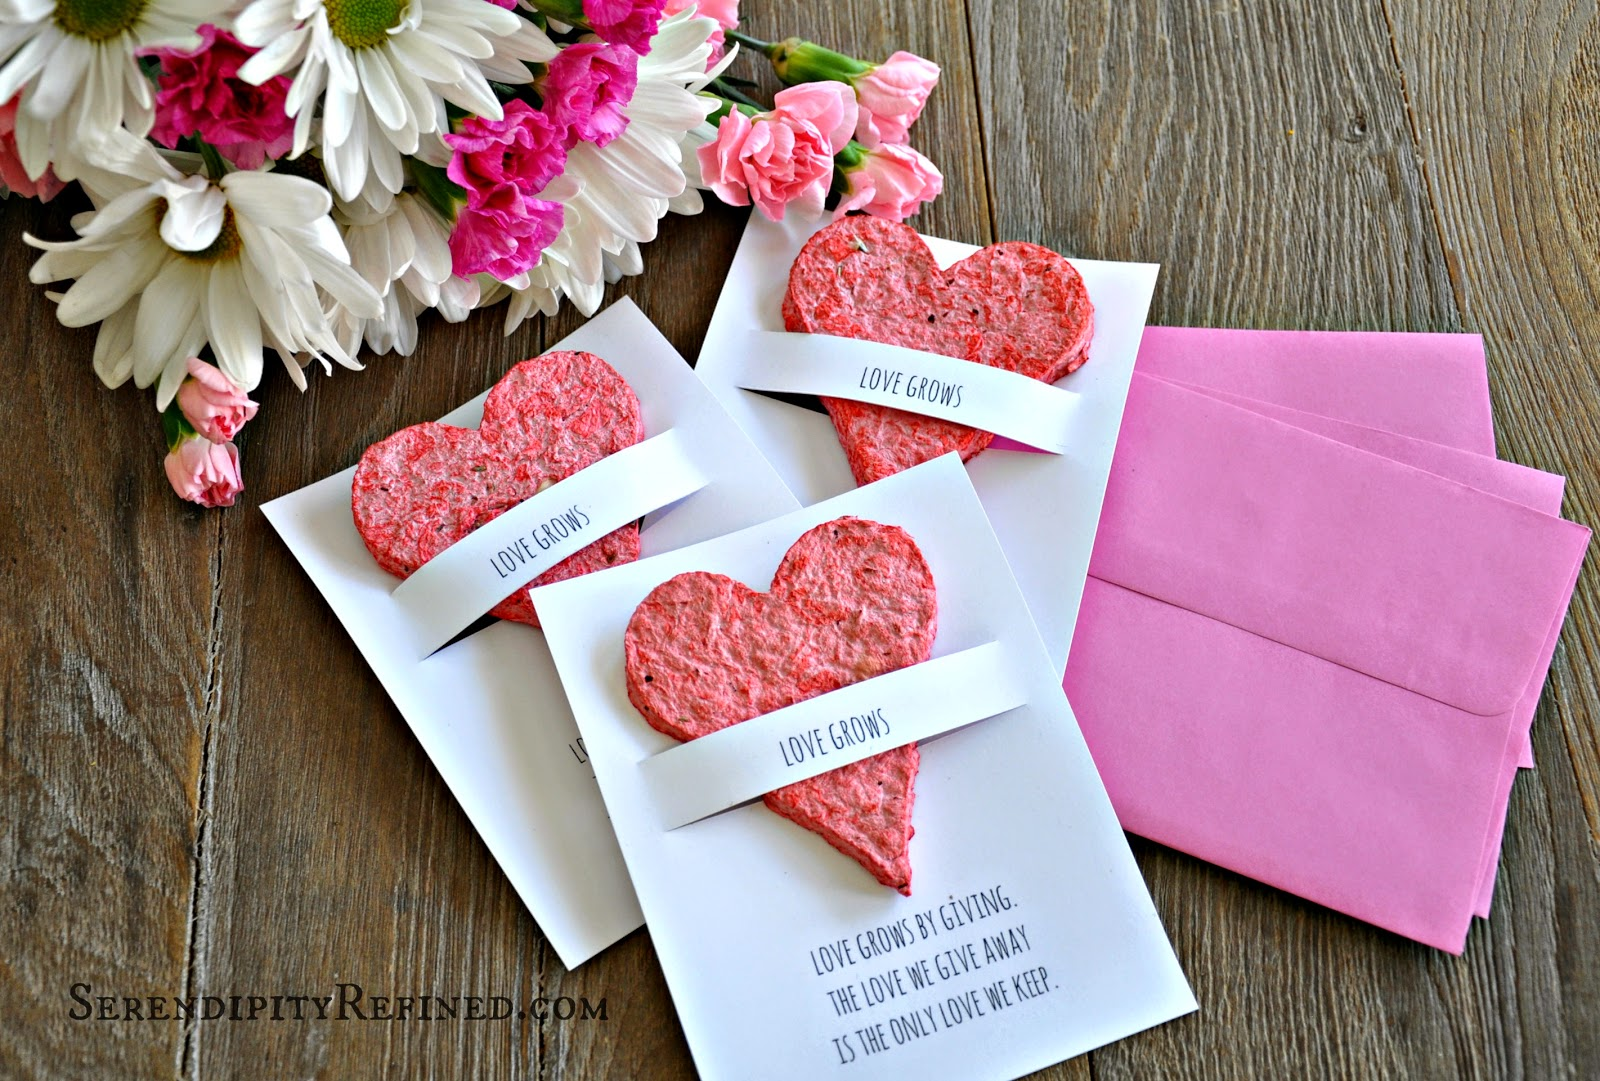 Serendipity Refined Blog: Hand Made Flower Seed Paper ...